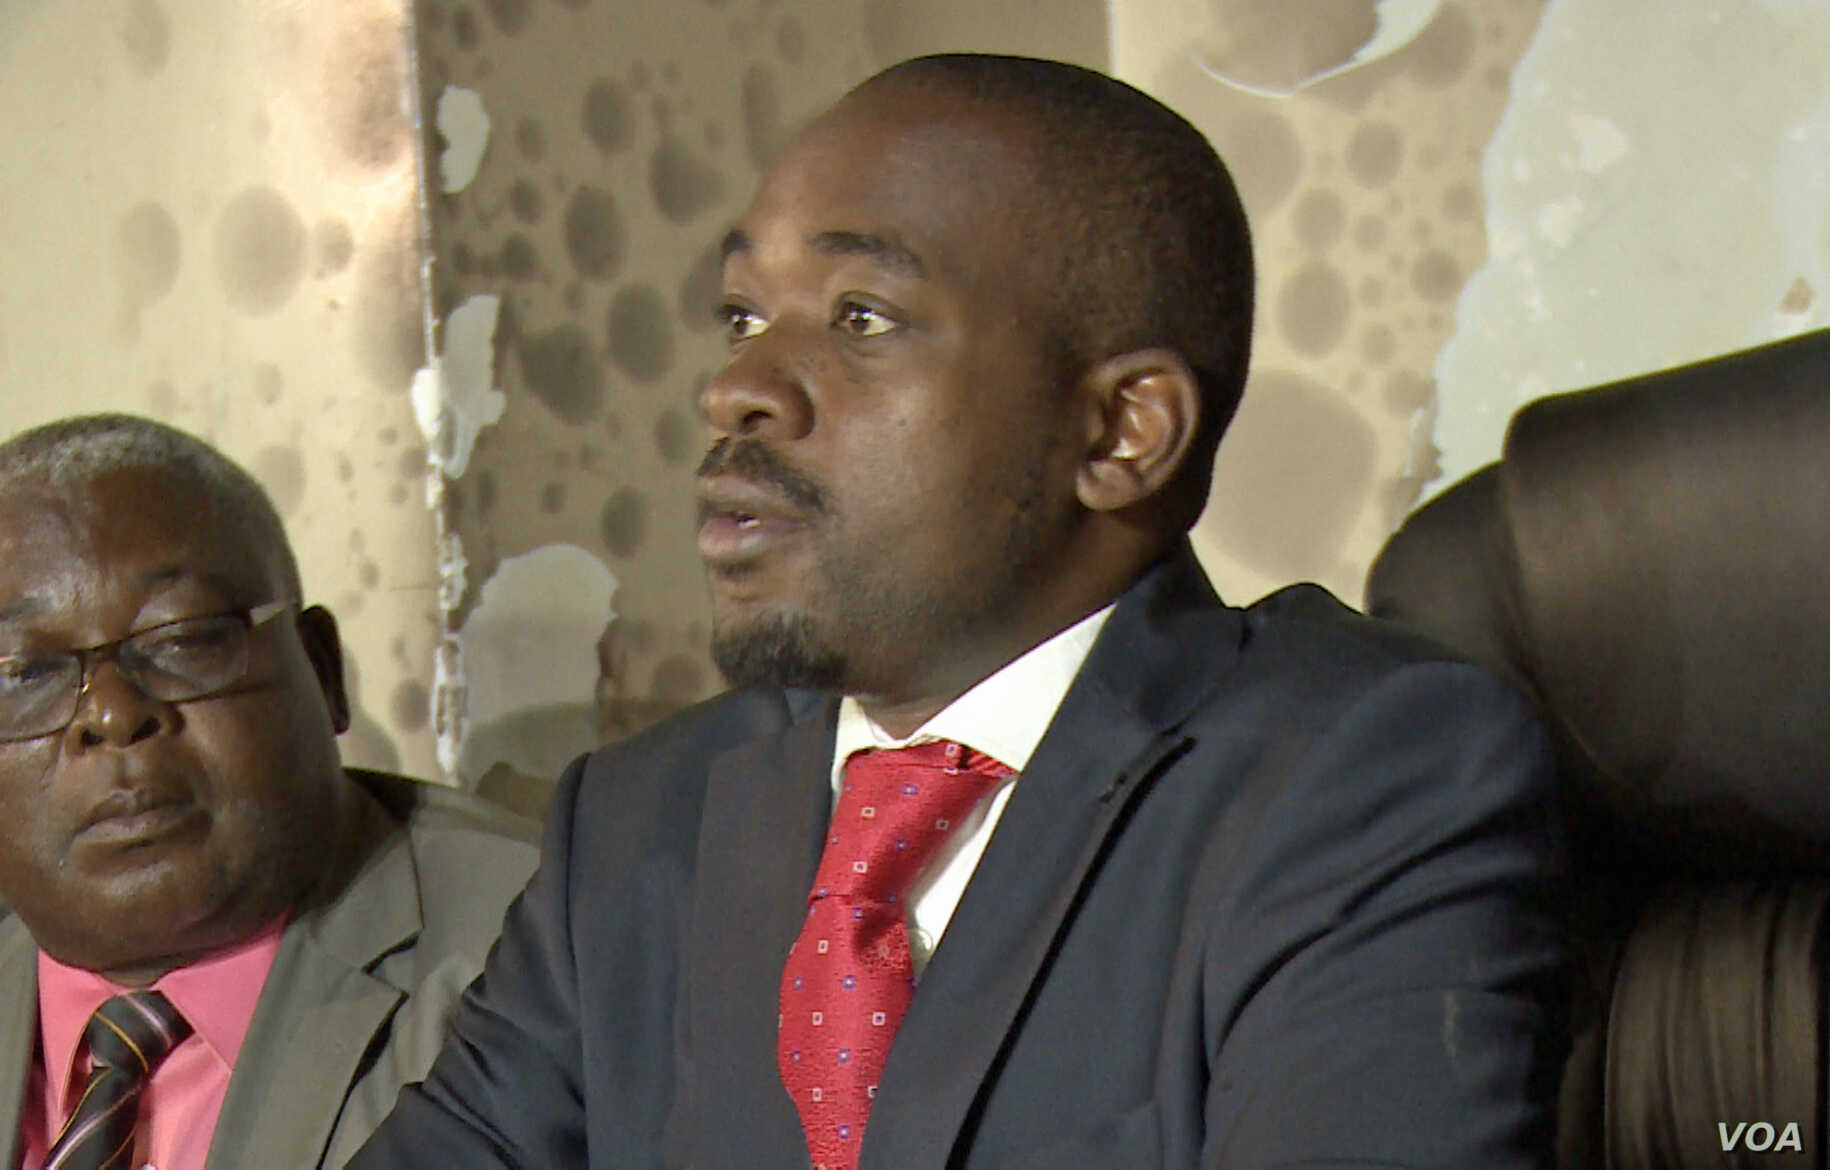 Nelson Chamisa, leader of Opposition Movement for Democratic Change told reporters, Jan. 29, 2019, in Harare that President Emmerson Mnangagwa's administration had not taken reports of human rights abuses by the security forces seriously.